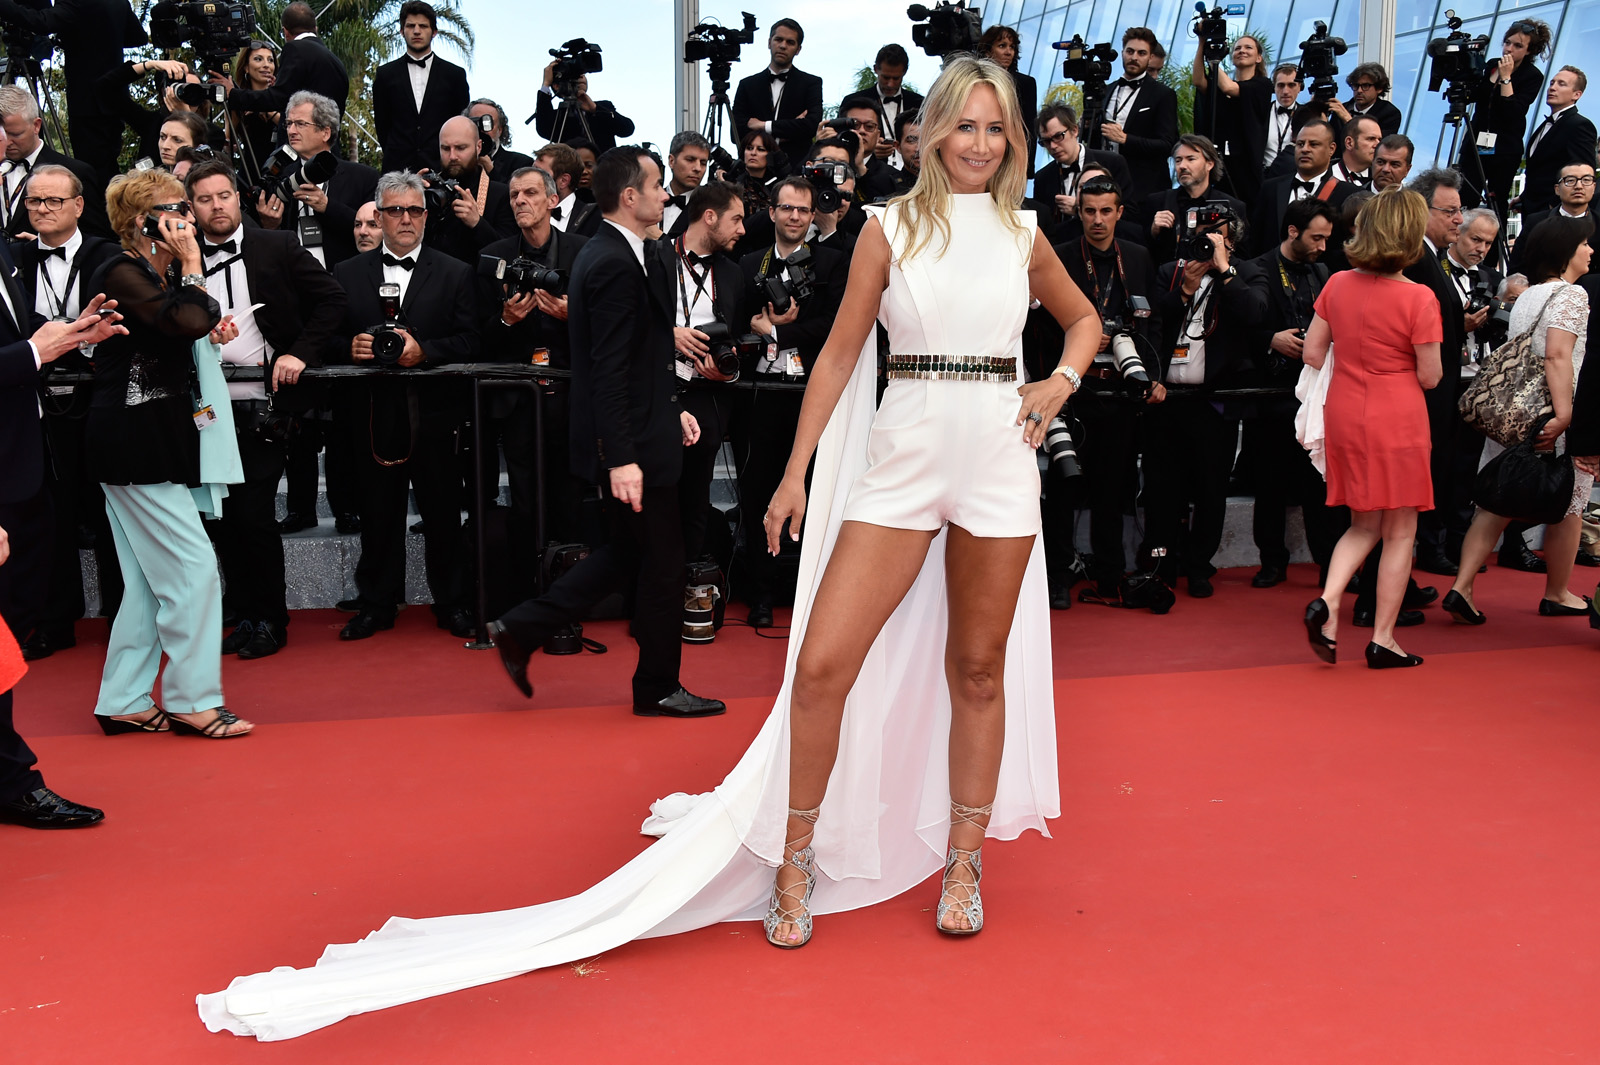 """CANNES, FRANCE - MAY 12:  Lady Victoria Hervey attends the """"Money Monster"""" premiere during the 69th annual Cannes Film Festival at the Palais des Festivals on May 12, 2016 in Cannes, France.  (Photo by Pascal Le Segretain/Getty Images)"""